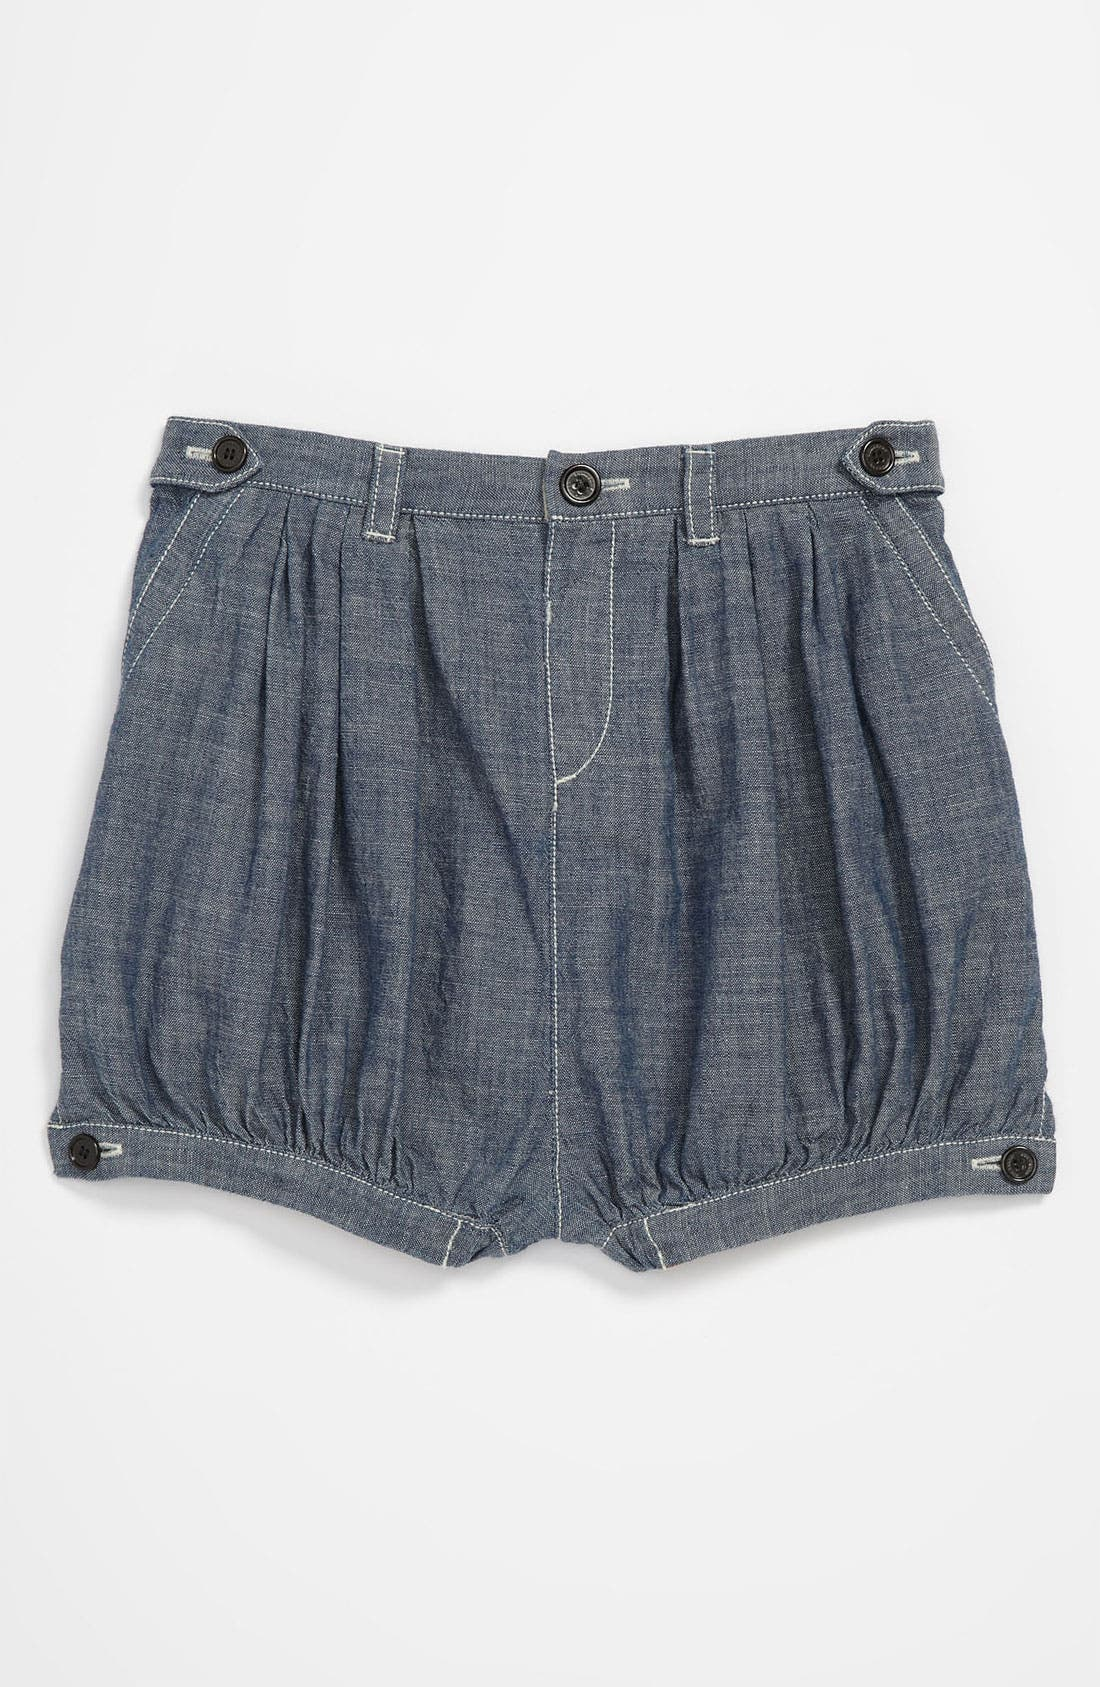 Alternate Image 1 Selected - Burberry 'Sally' Woven Shorts (Toddler)